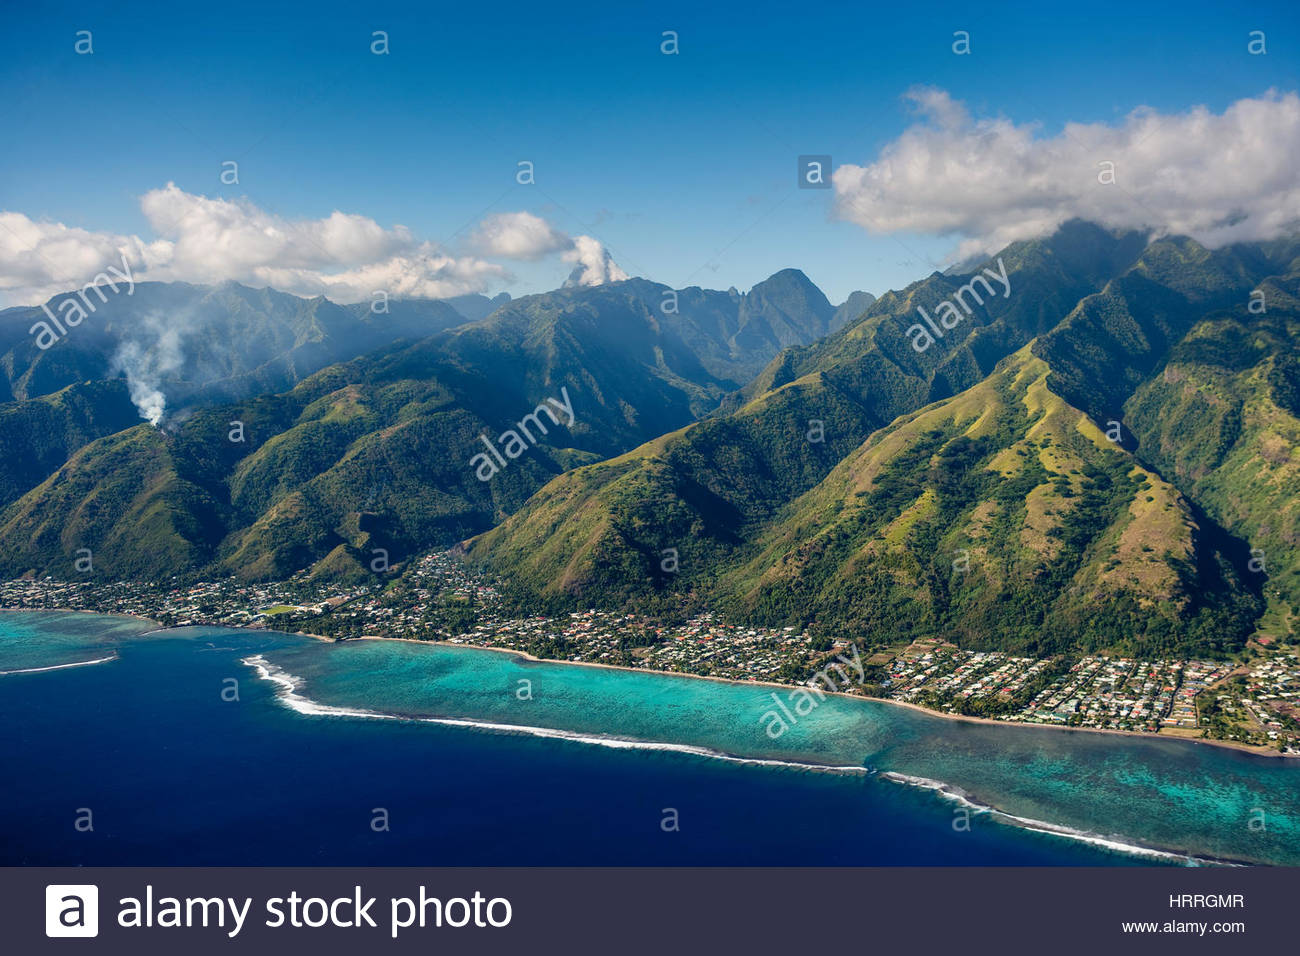 tropical islands von franz sisch polynesien hauptstadt papeete auf tahiti stockfoto bild. Black Bedroom Furniture Sets. Home Design Ideas